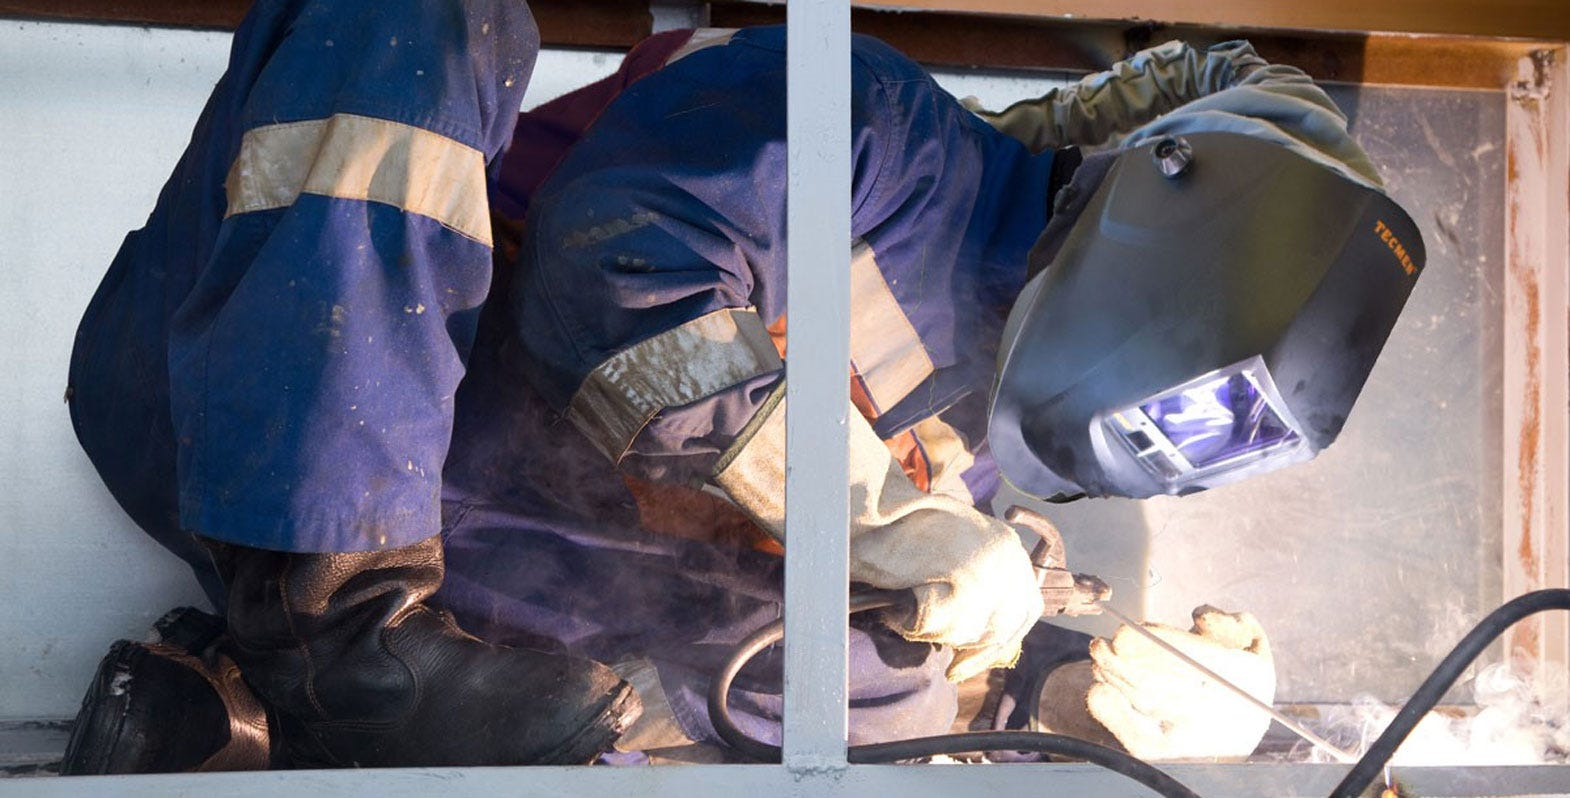 Best Practices For Welding In Confined Spaces